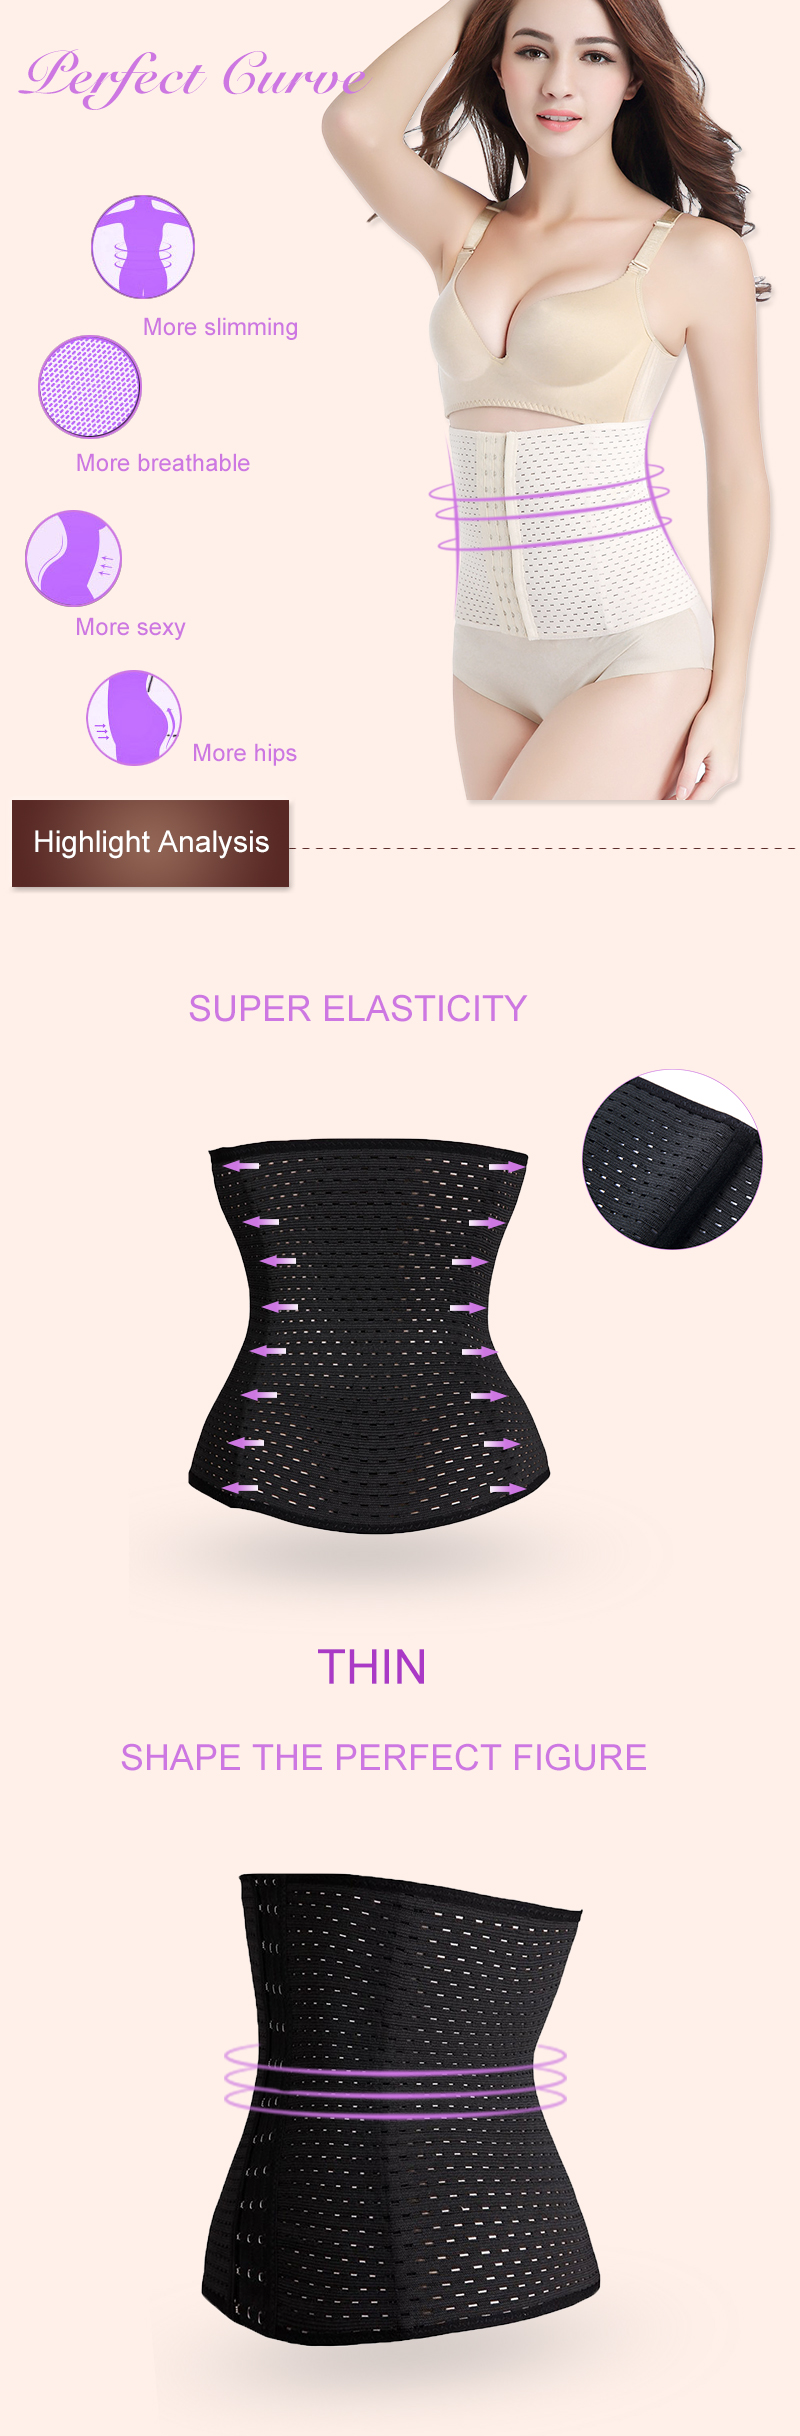 Waist trainer hot shapers waist trainer corset Slimming Belt Shaper body shaper slimming modeling strap Belt Slimming Corset 6